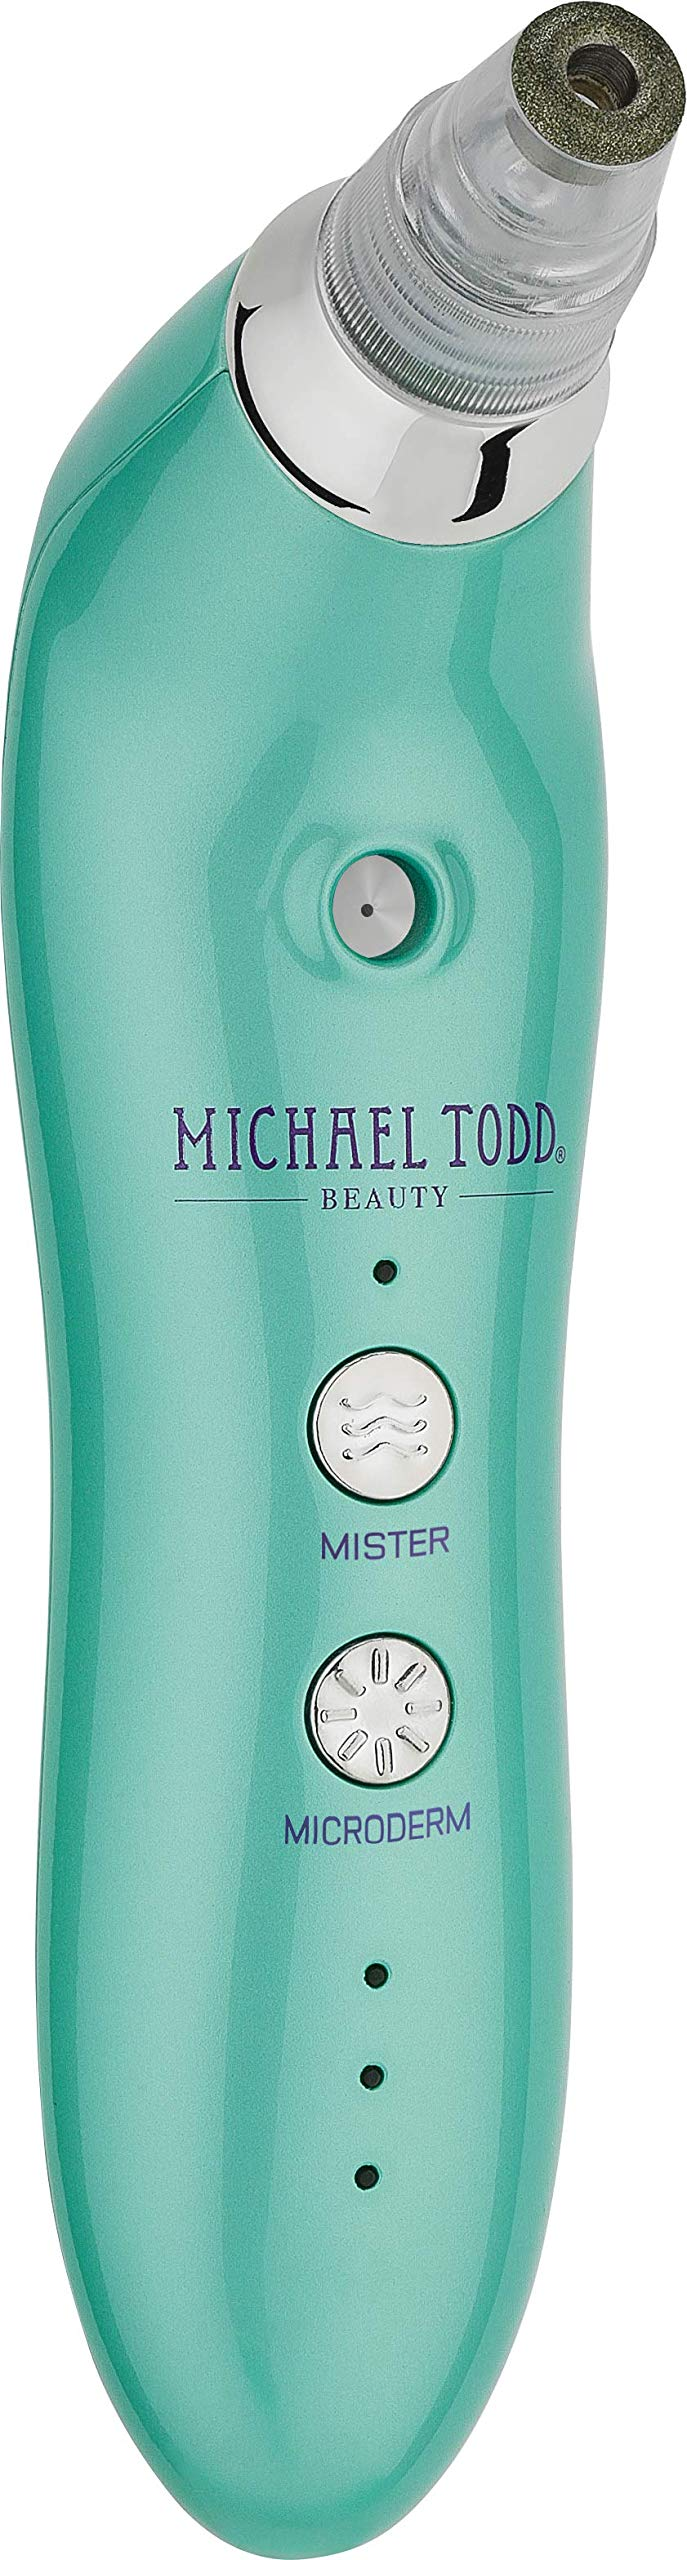 Michael Todd Sonic Refresher Wet/dry Sonic Microdermabrasion System With Micromist Technology, Teal